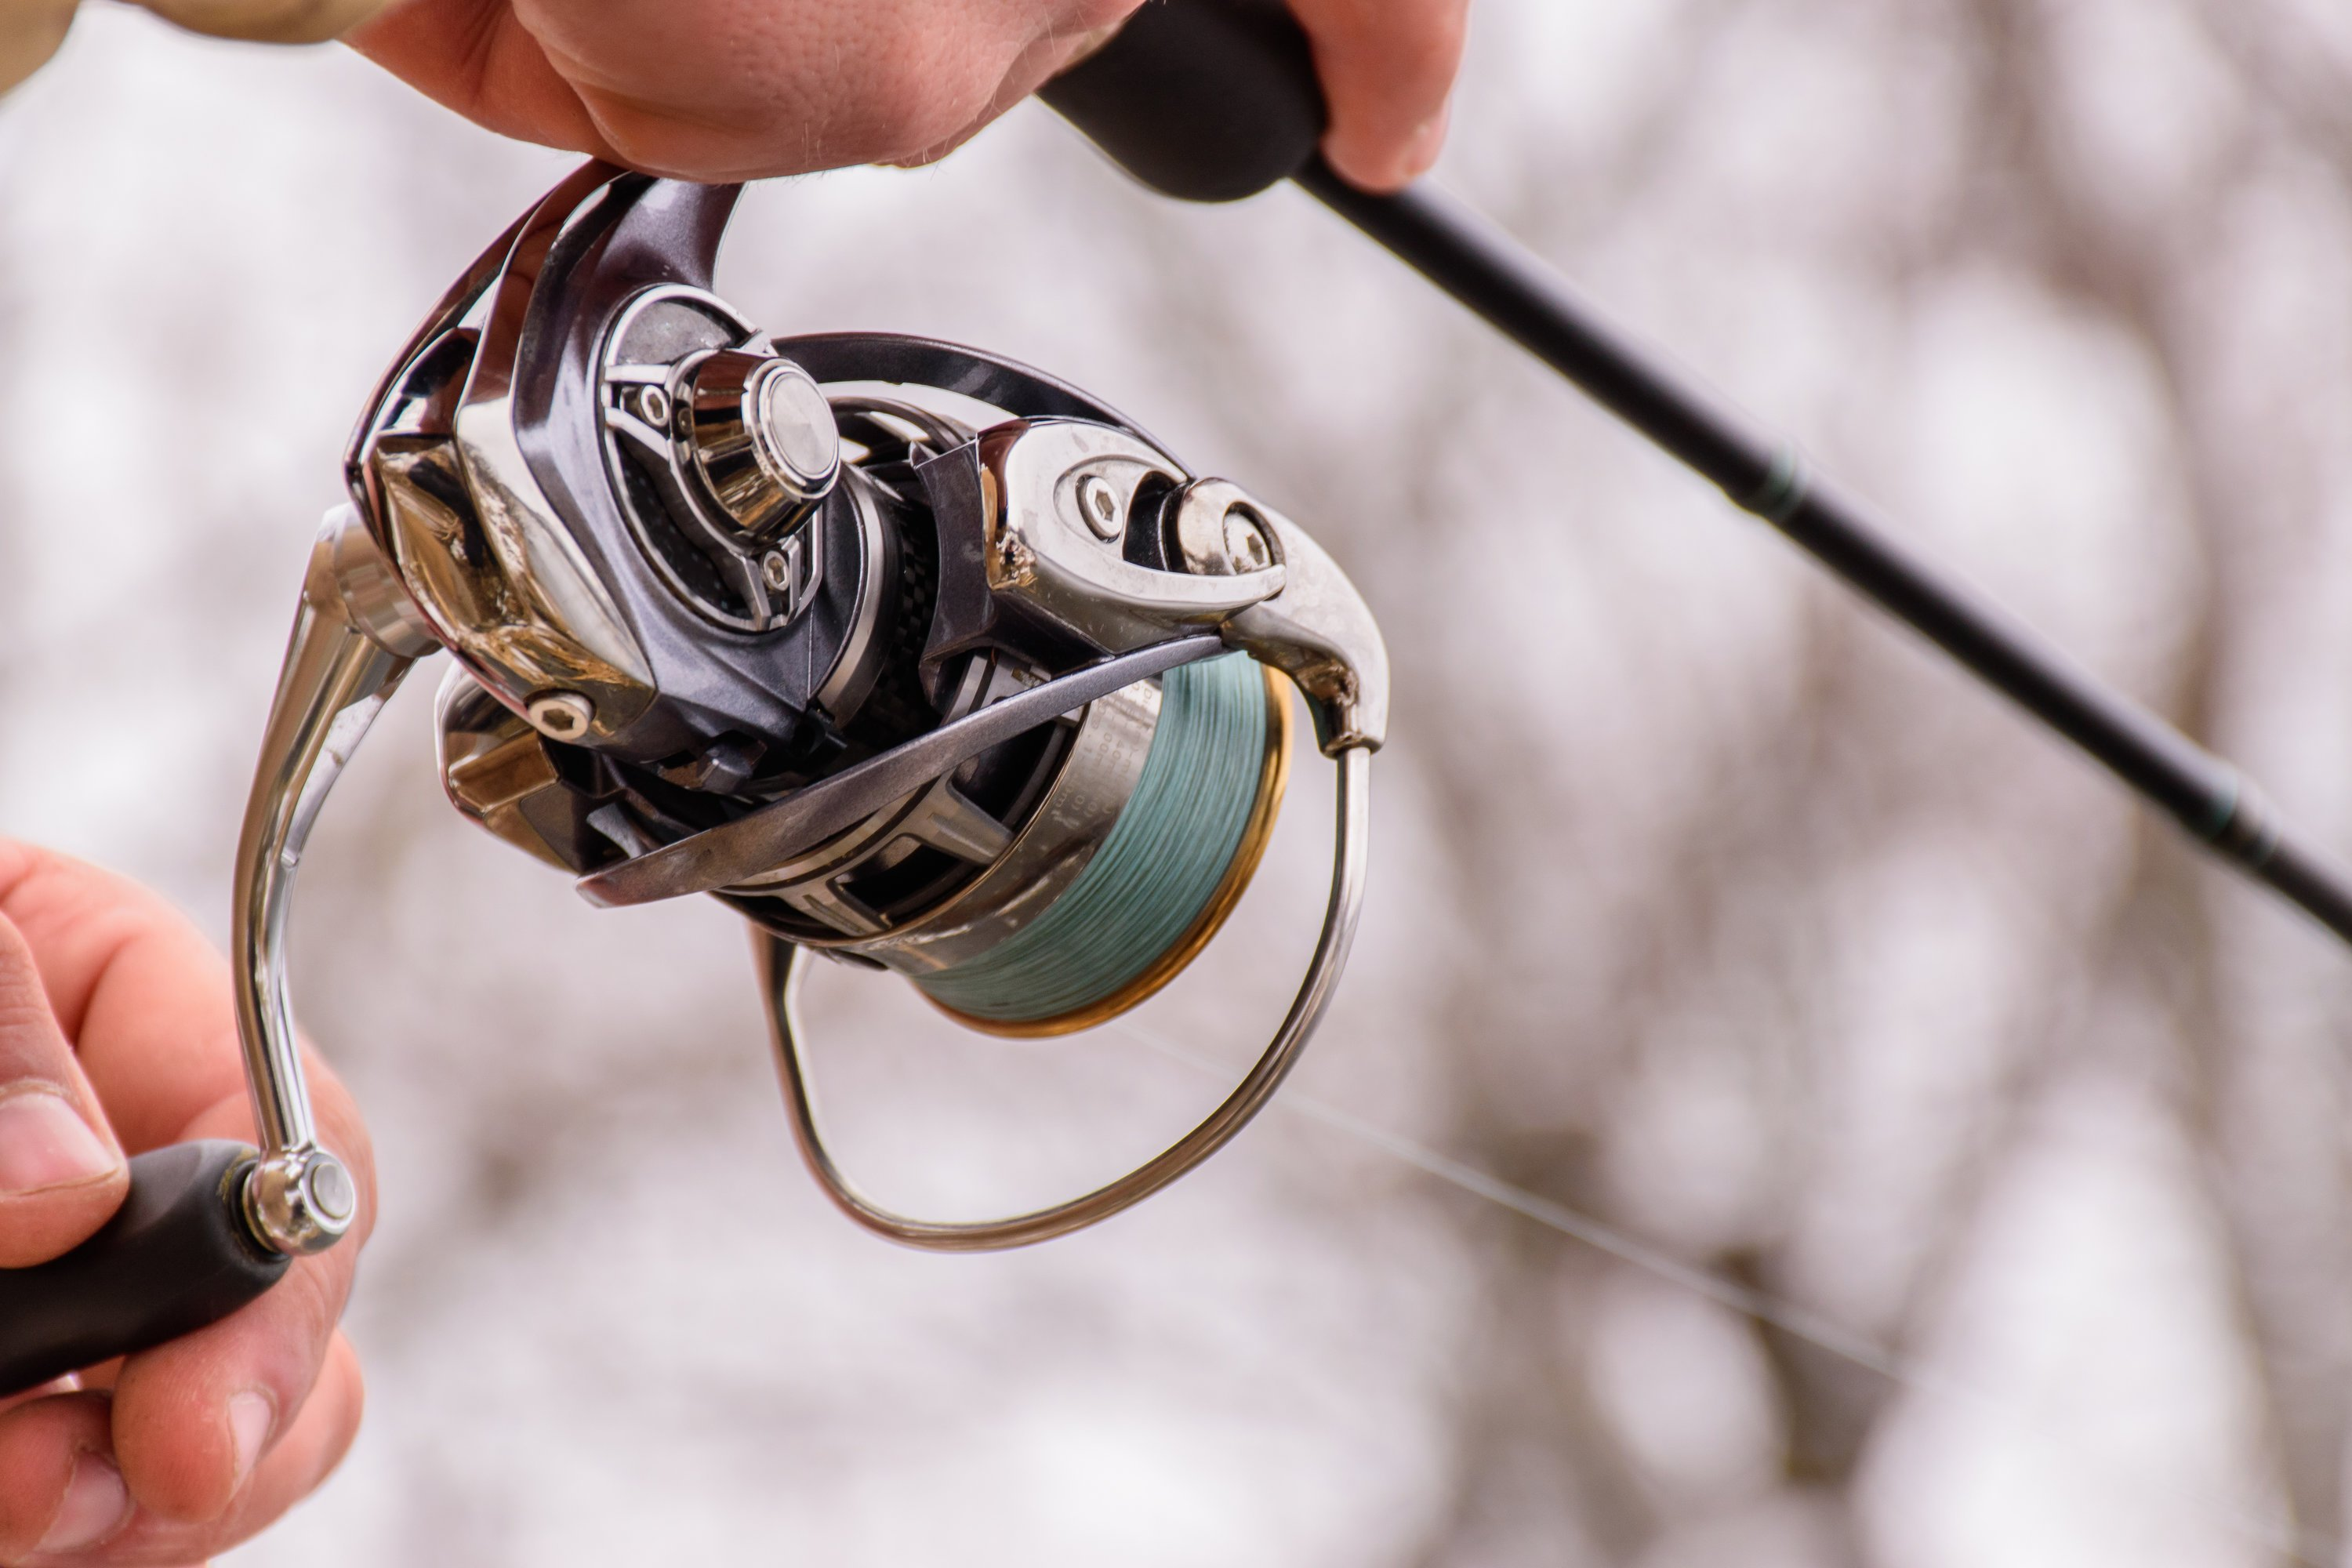 a closeup of a spinning reel on a fishing rod